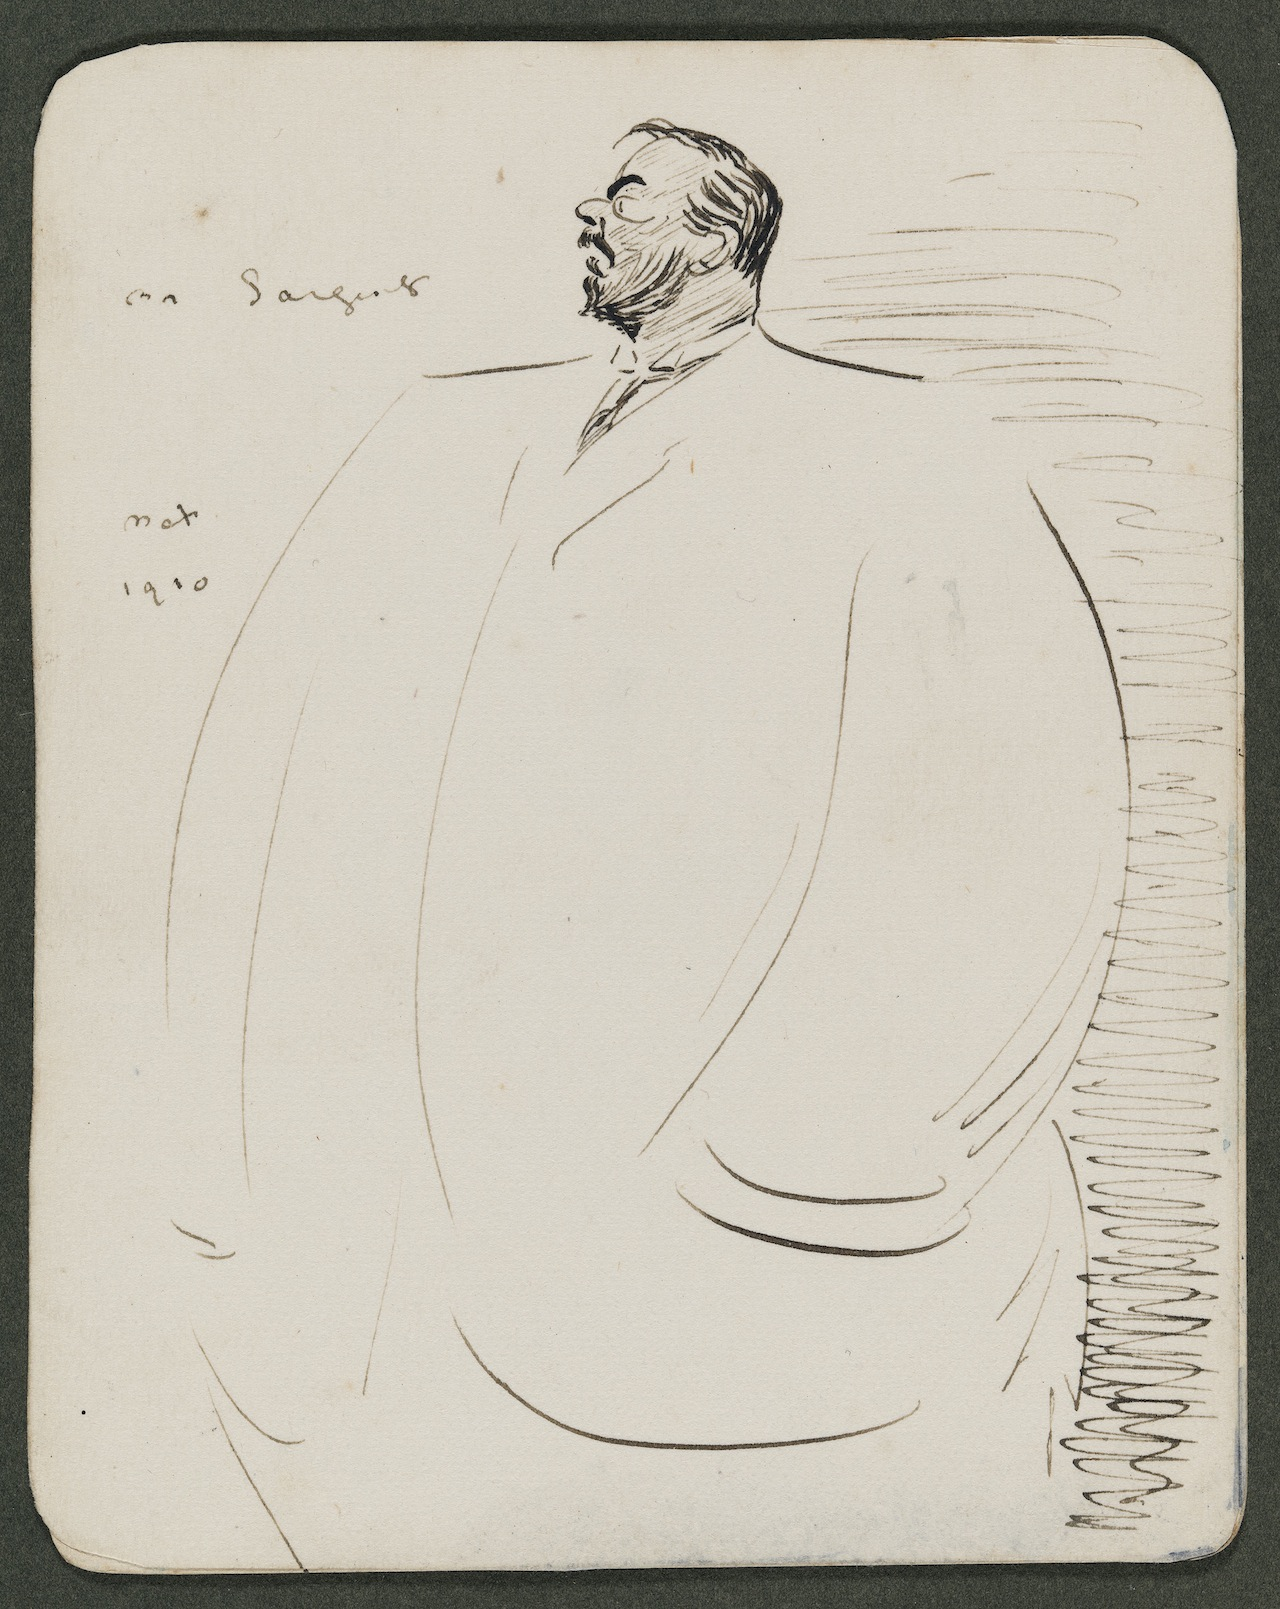 Sketch of John S. Sargent Max Beerbohm (English, 1872–1956) Undated  Ink on paper *Museum of Fine Arts, Boston.  The John Singer Sargent Archive—Gift of Jan and Warren Adelson *Photograph © Museum of Fine Arts, Boston